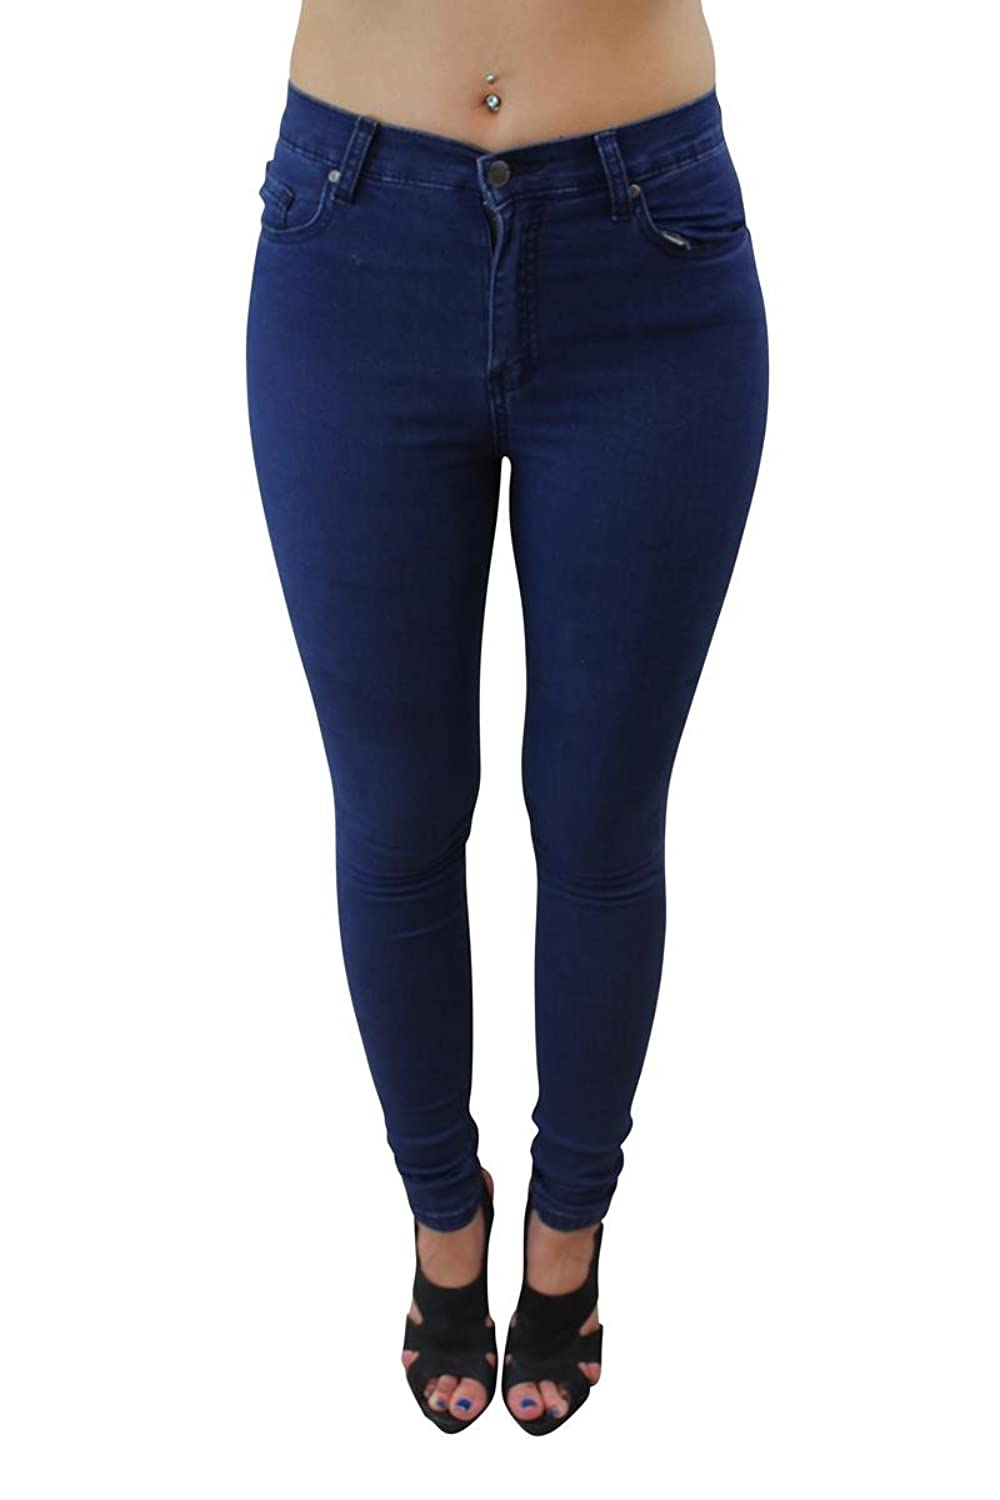 Girl Talk Clothing Mid Wash Blue Skinny Jeans